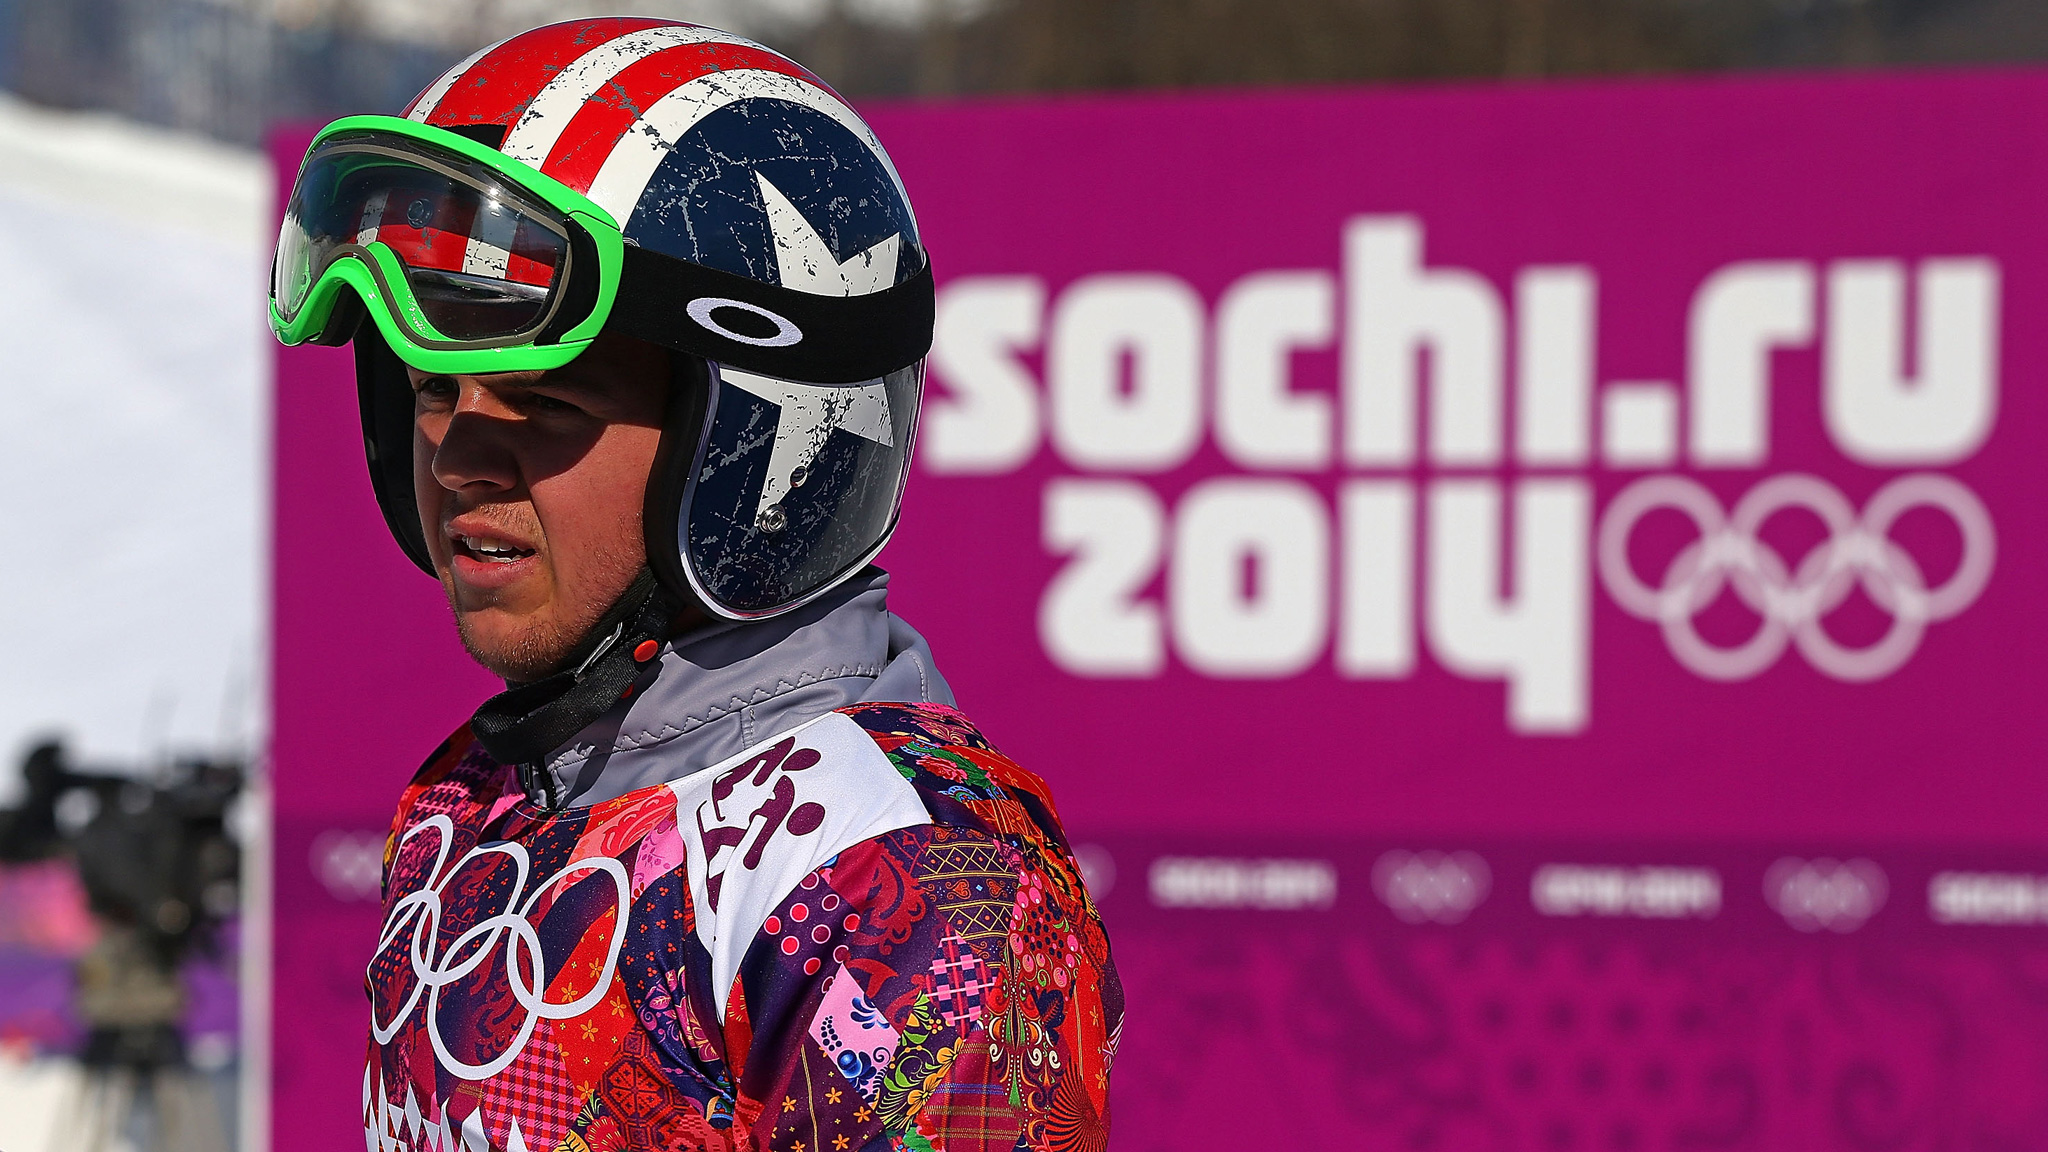 Jacob had never finished higher than seventh in a World Cup race before he surprised the field, winning the World Cup snowboardcross event in Vallnord, Andorra and clinching his U.S. Olympic team spot.